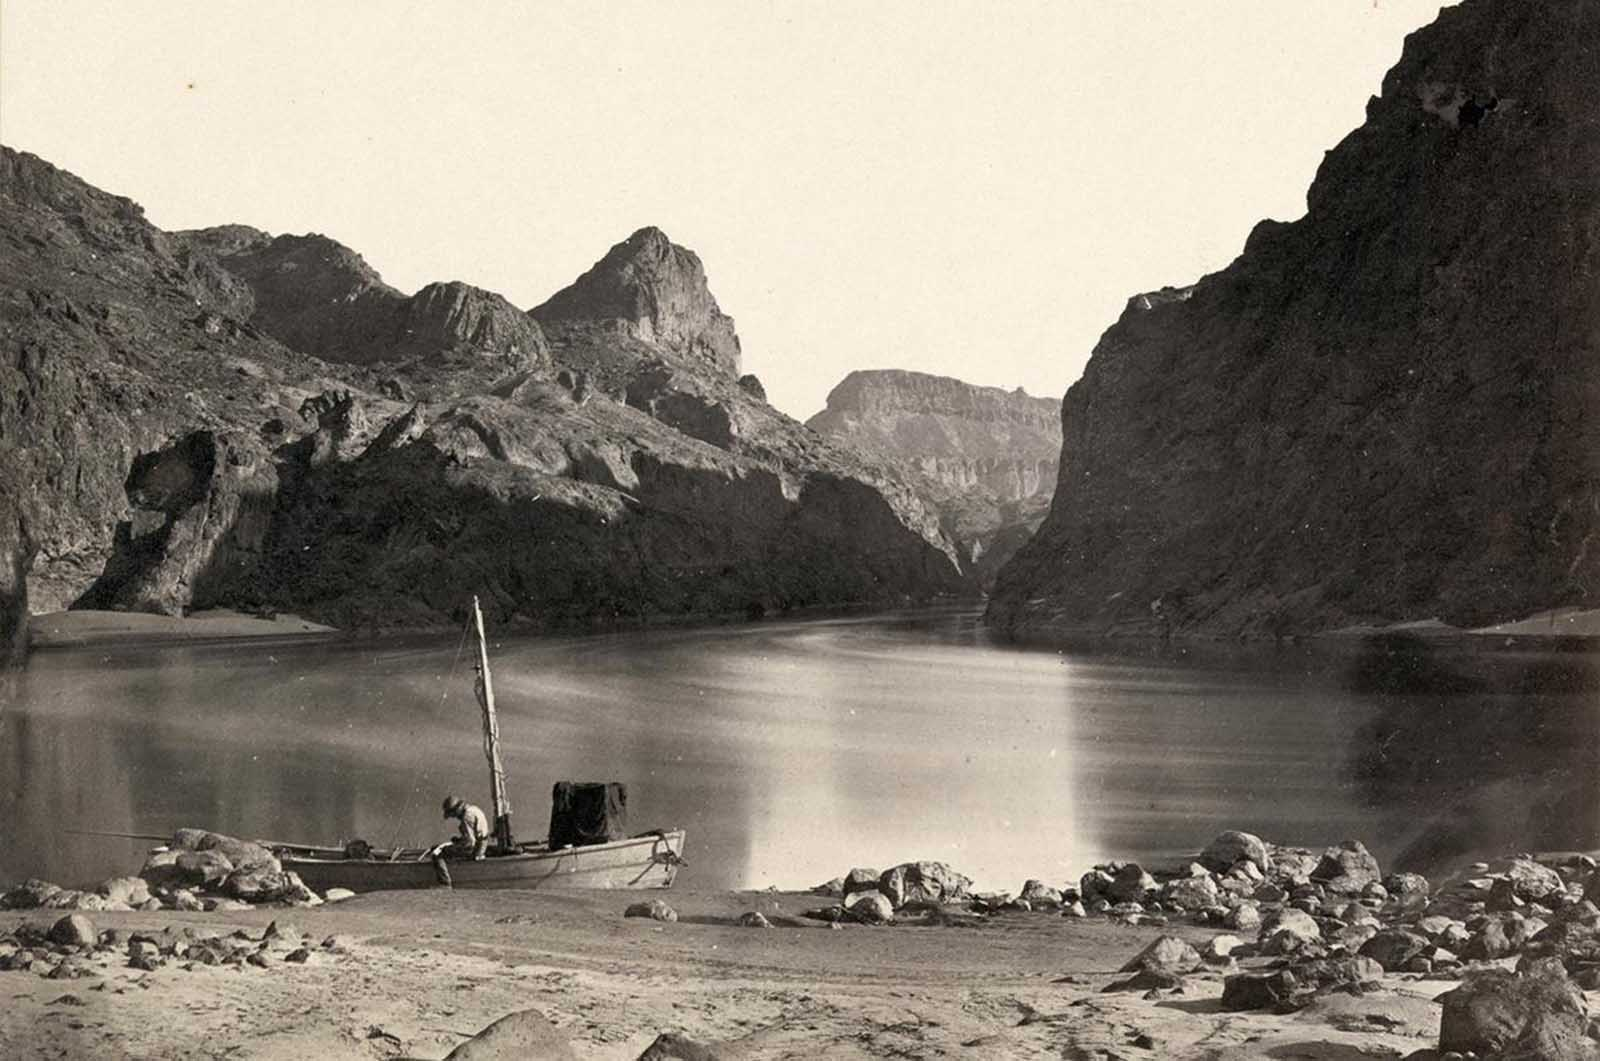 A man sits in a wooden boat with a mast on the edge of the Colorado River in the Black Canyon, Mojave County, Arizona. At this time, photographer Timothy O'Sullivan was working as a military photographer, for Lt. George Montague Wheeler's U.S. Geographical Surveys West of the One Hundredth Meridian. Photo taken in 1871, from expedition camp 8, looking upstream.